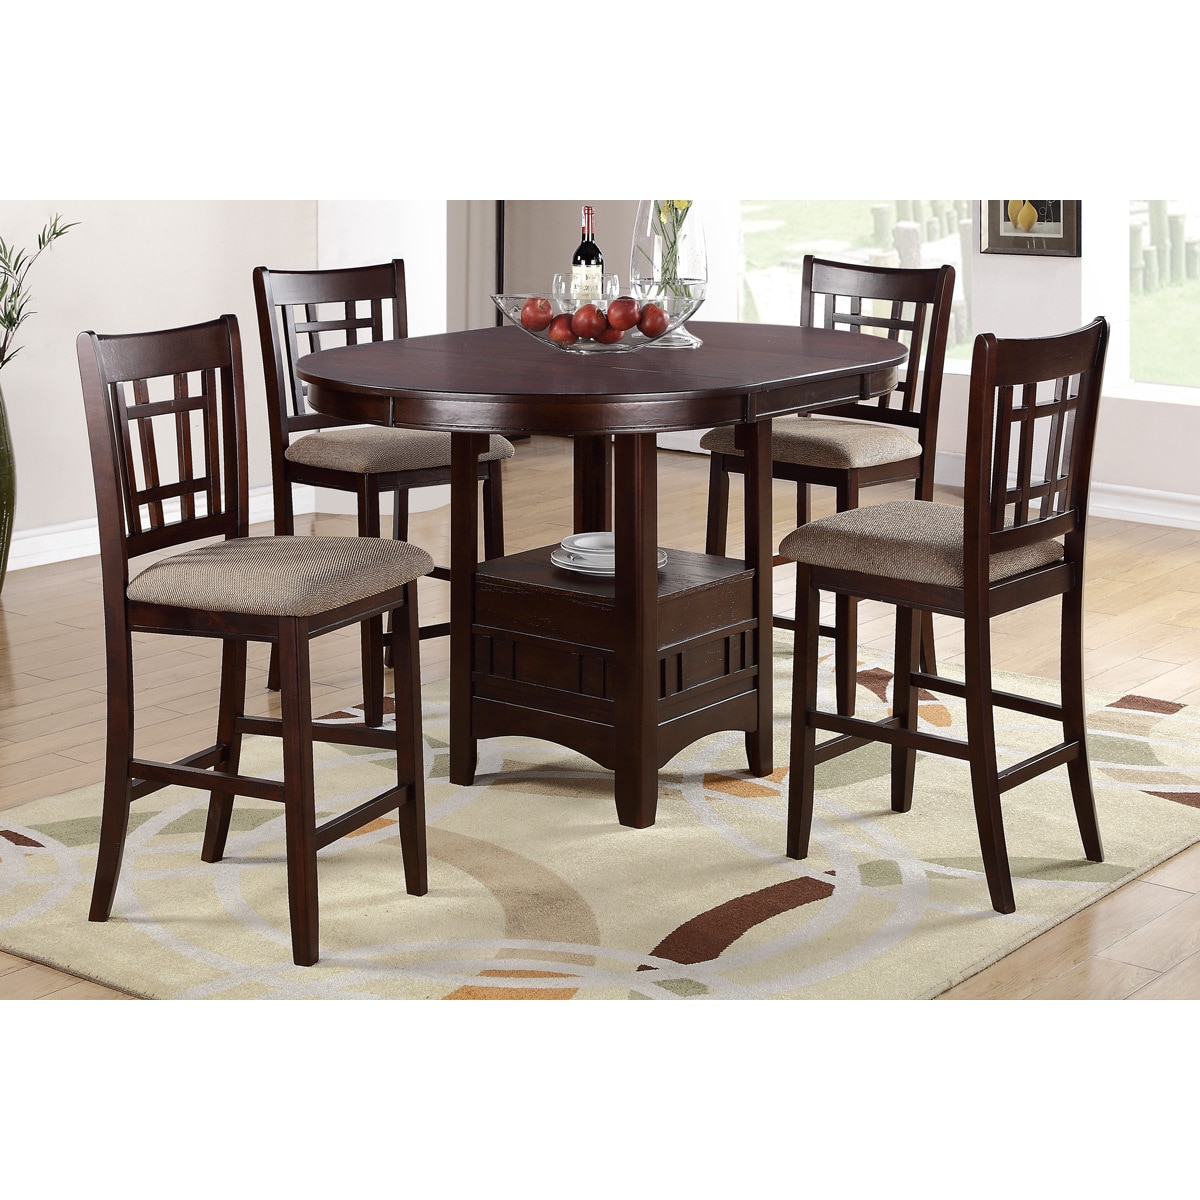 Poundex Pesaro 5 pieces Counter Height Oval Table with Co...